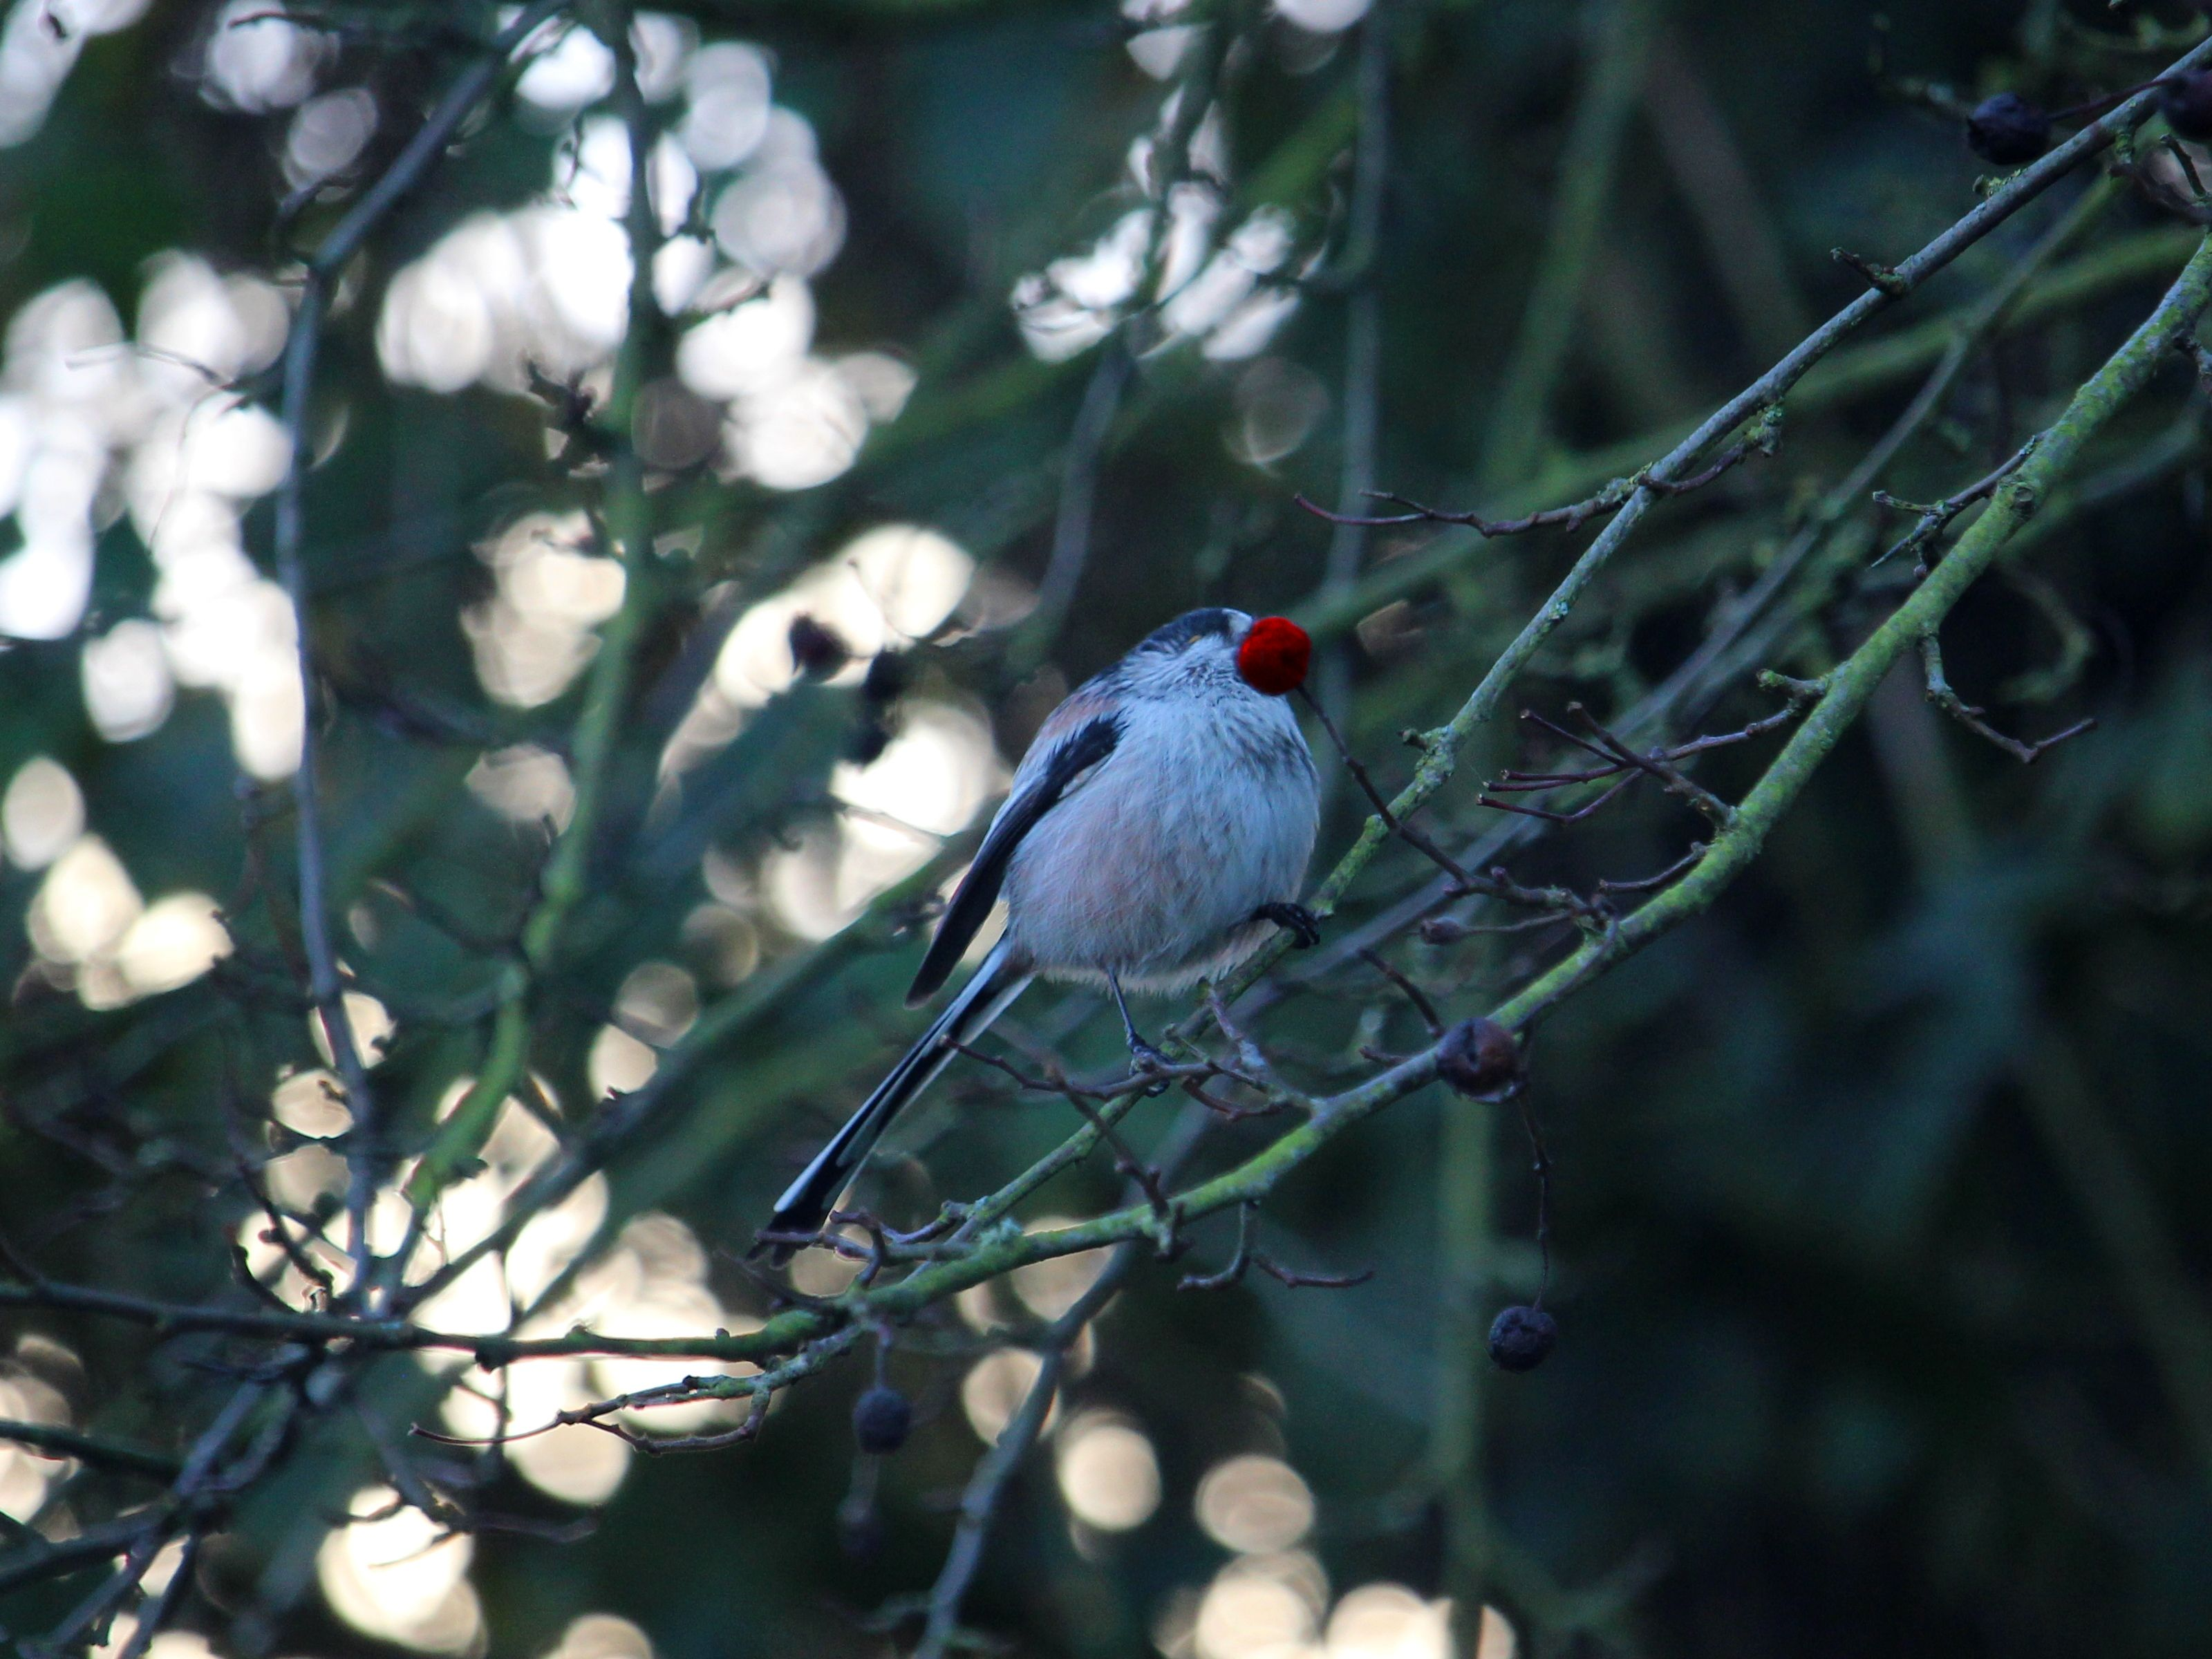 Red Nose Long Tail, Amateur photography, Bird, Cheshire Countryside, Forest, HQ Photo